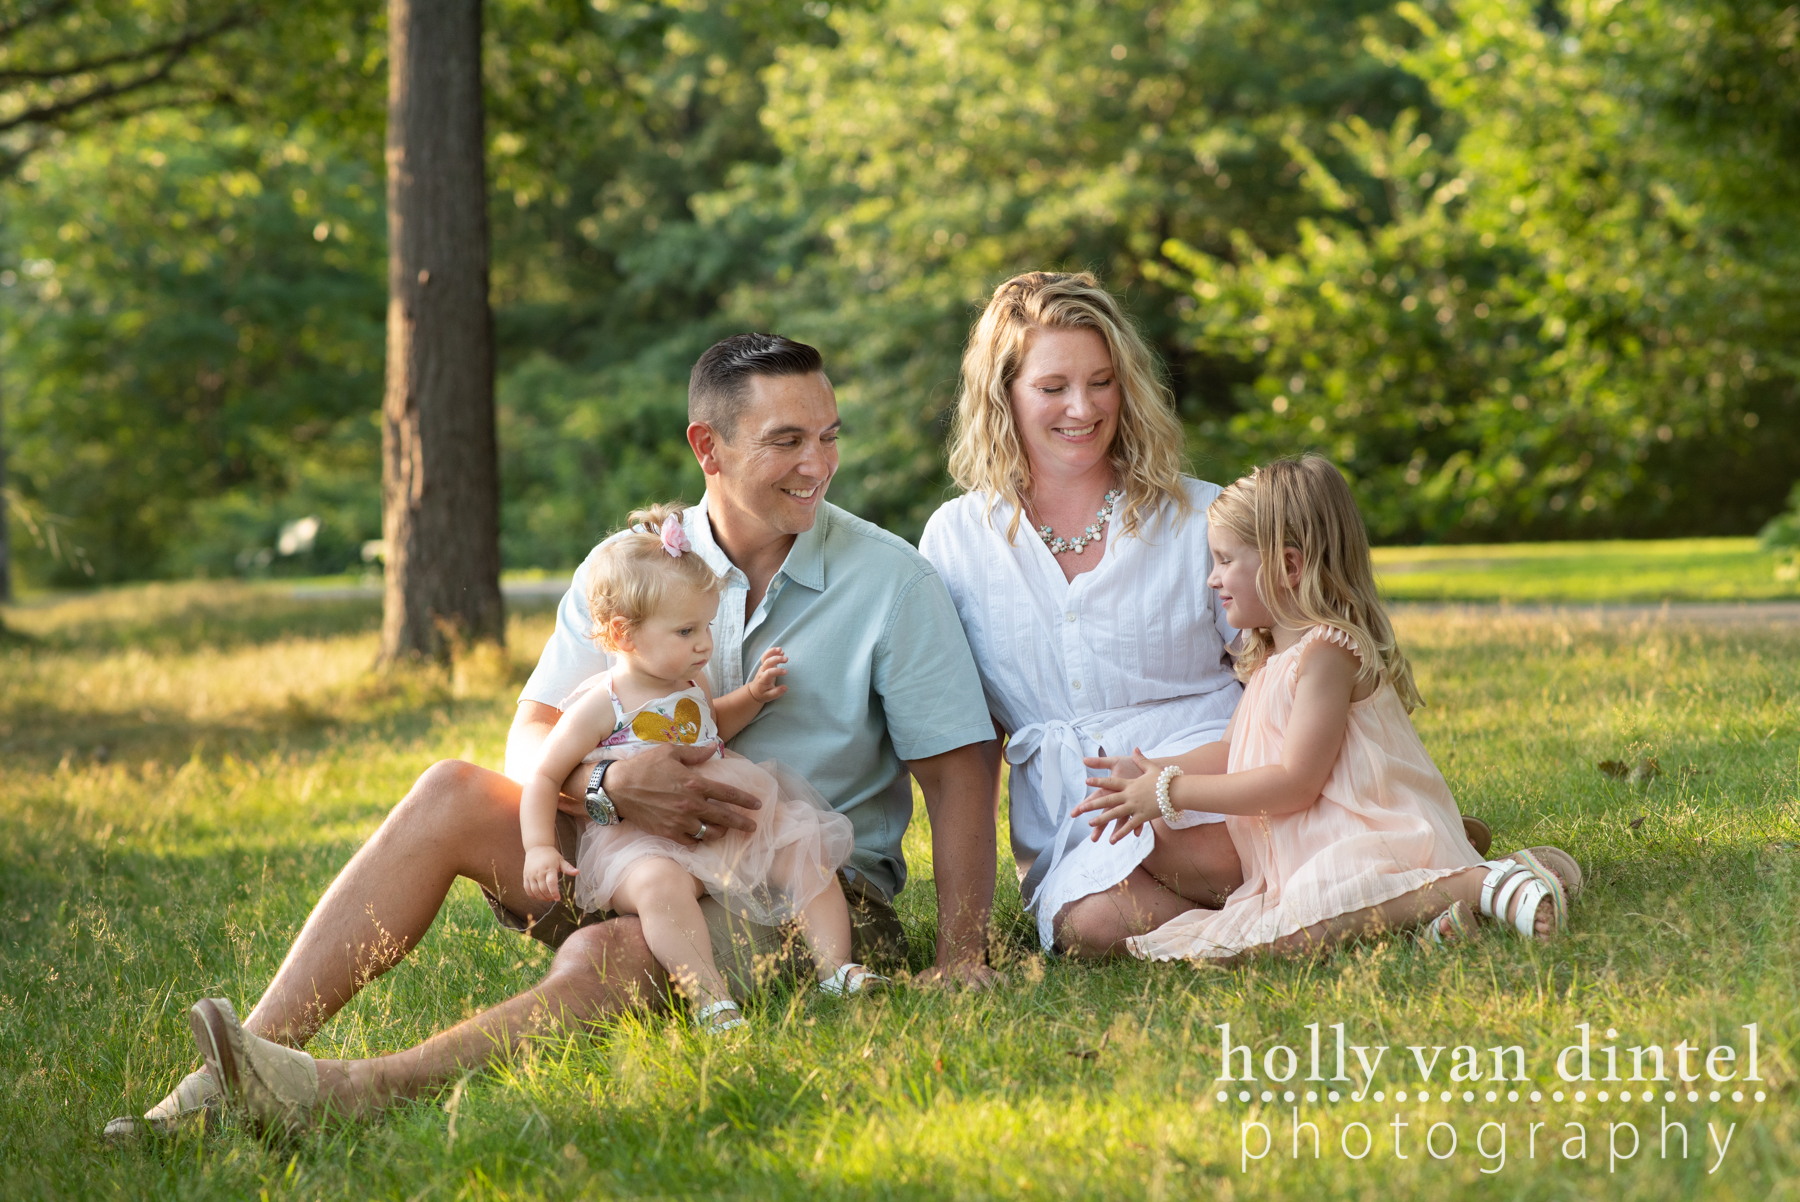 Family Sessions - Are you looking for a session for you and the people you love the most? These are the sessions for you!